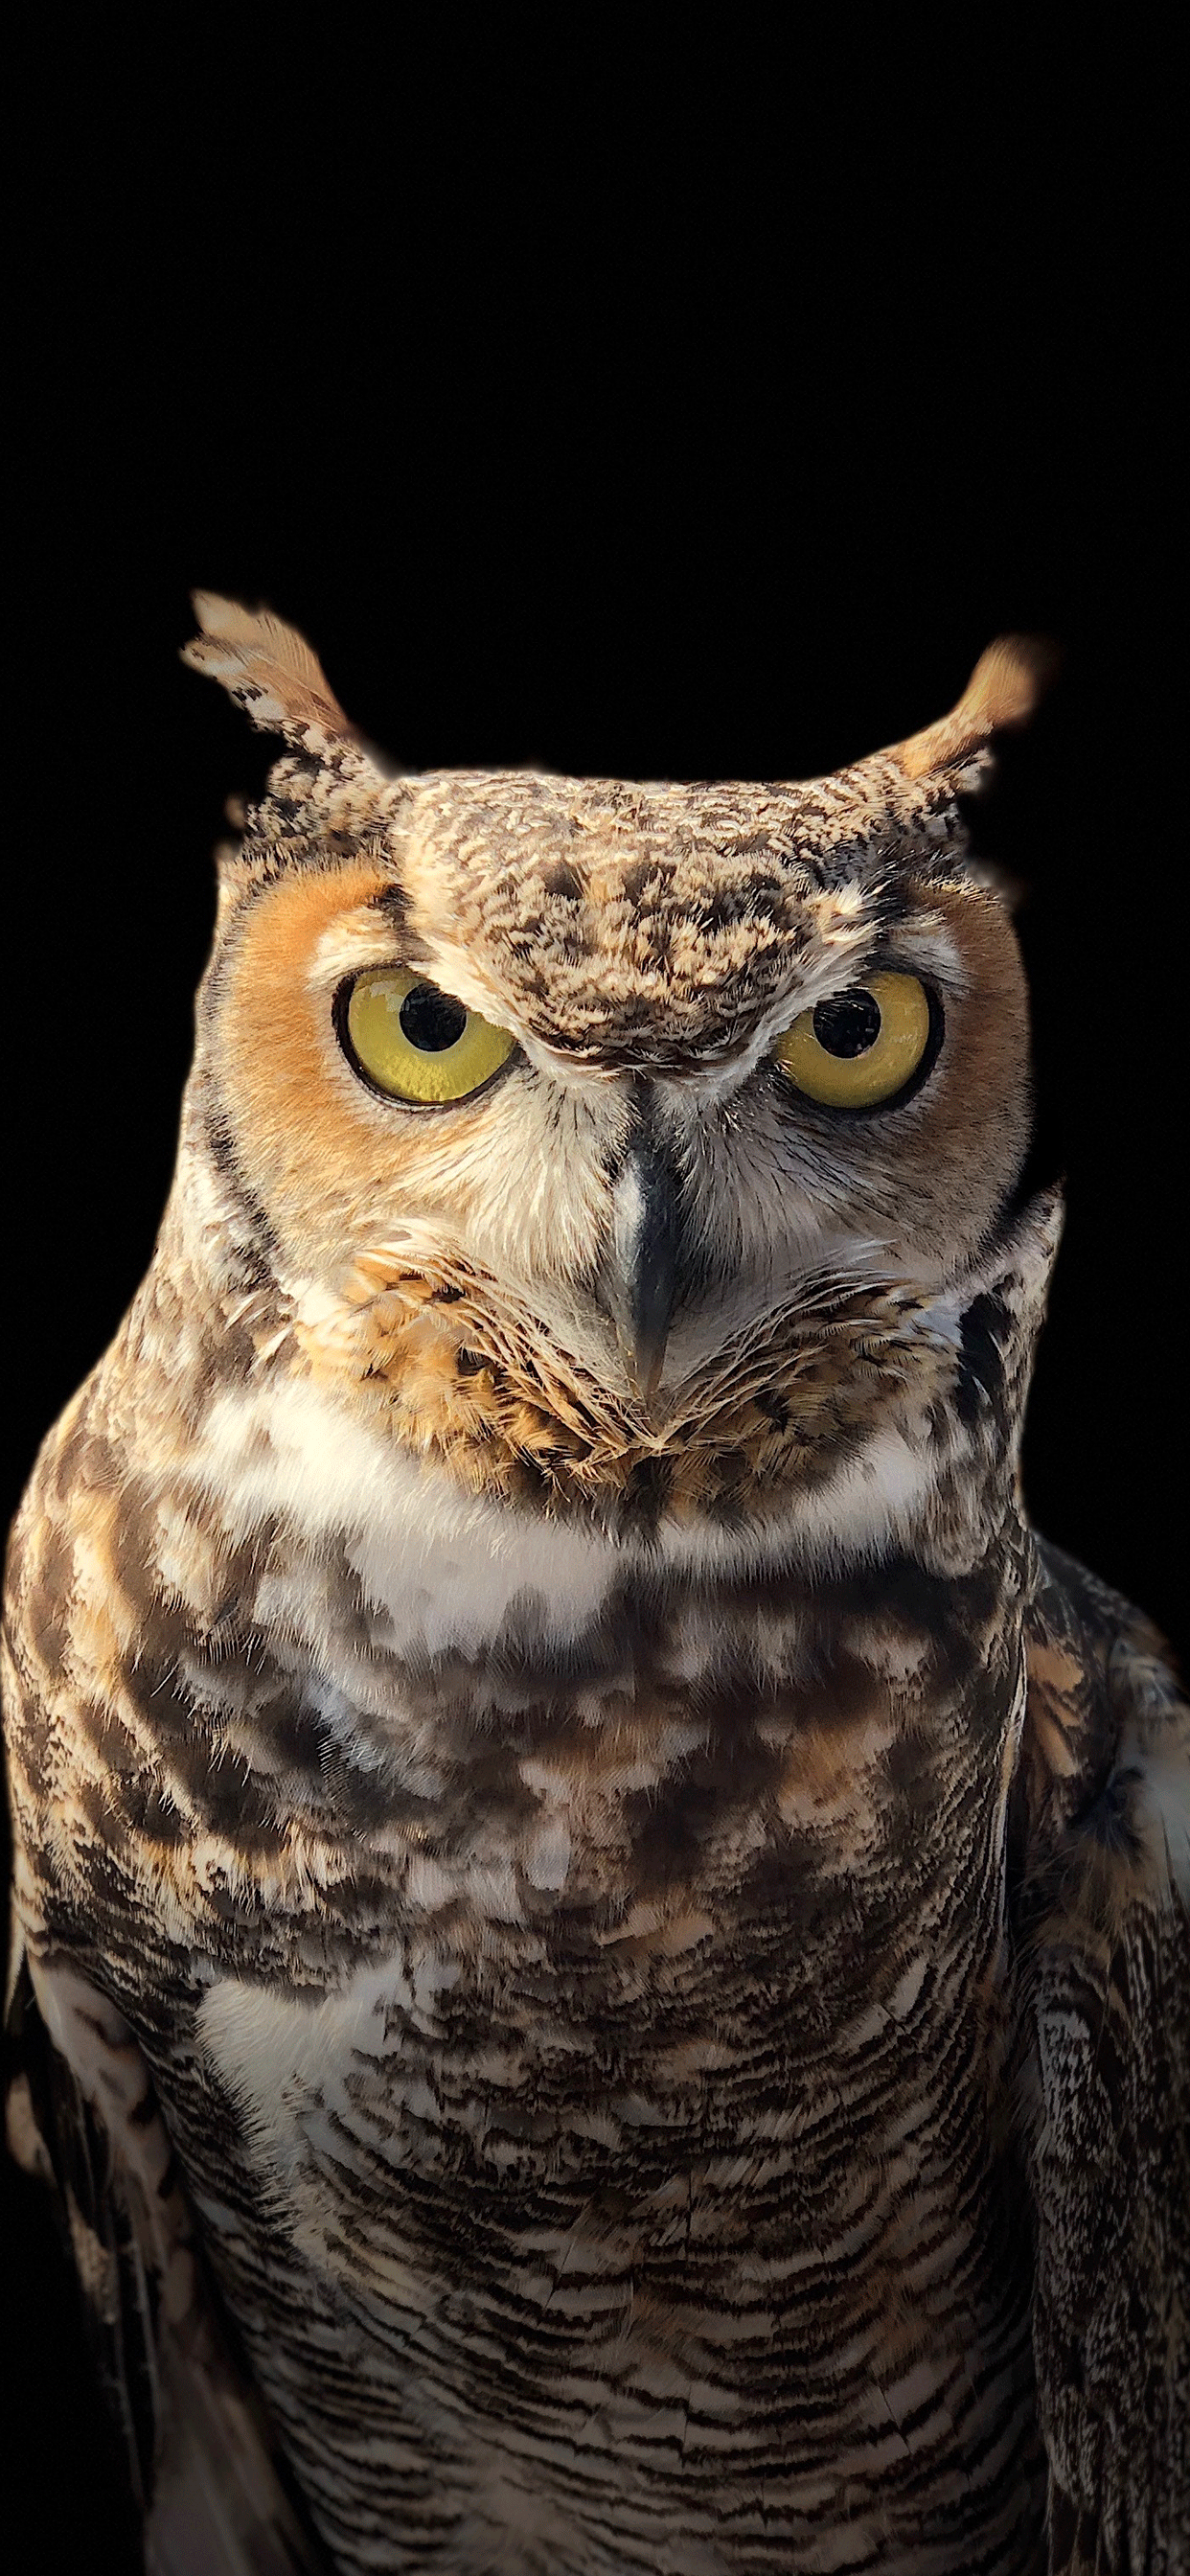 iPhone wallpapers owl eyes Fonds d'écran iPhone du 07/06/2019